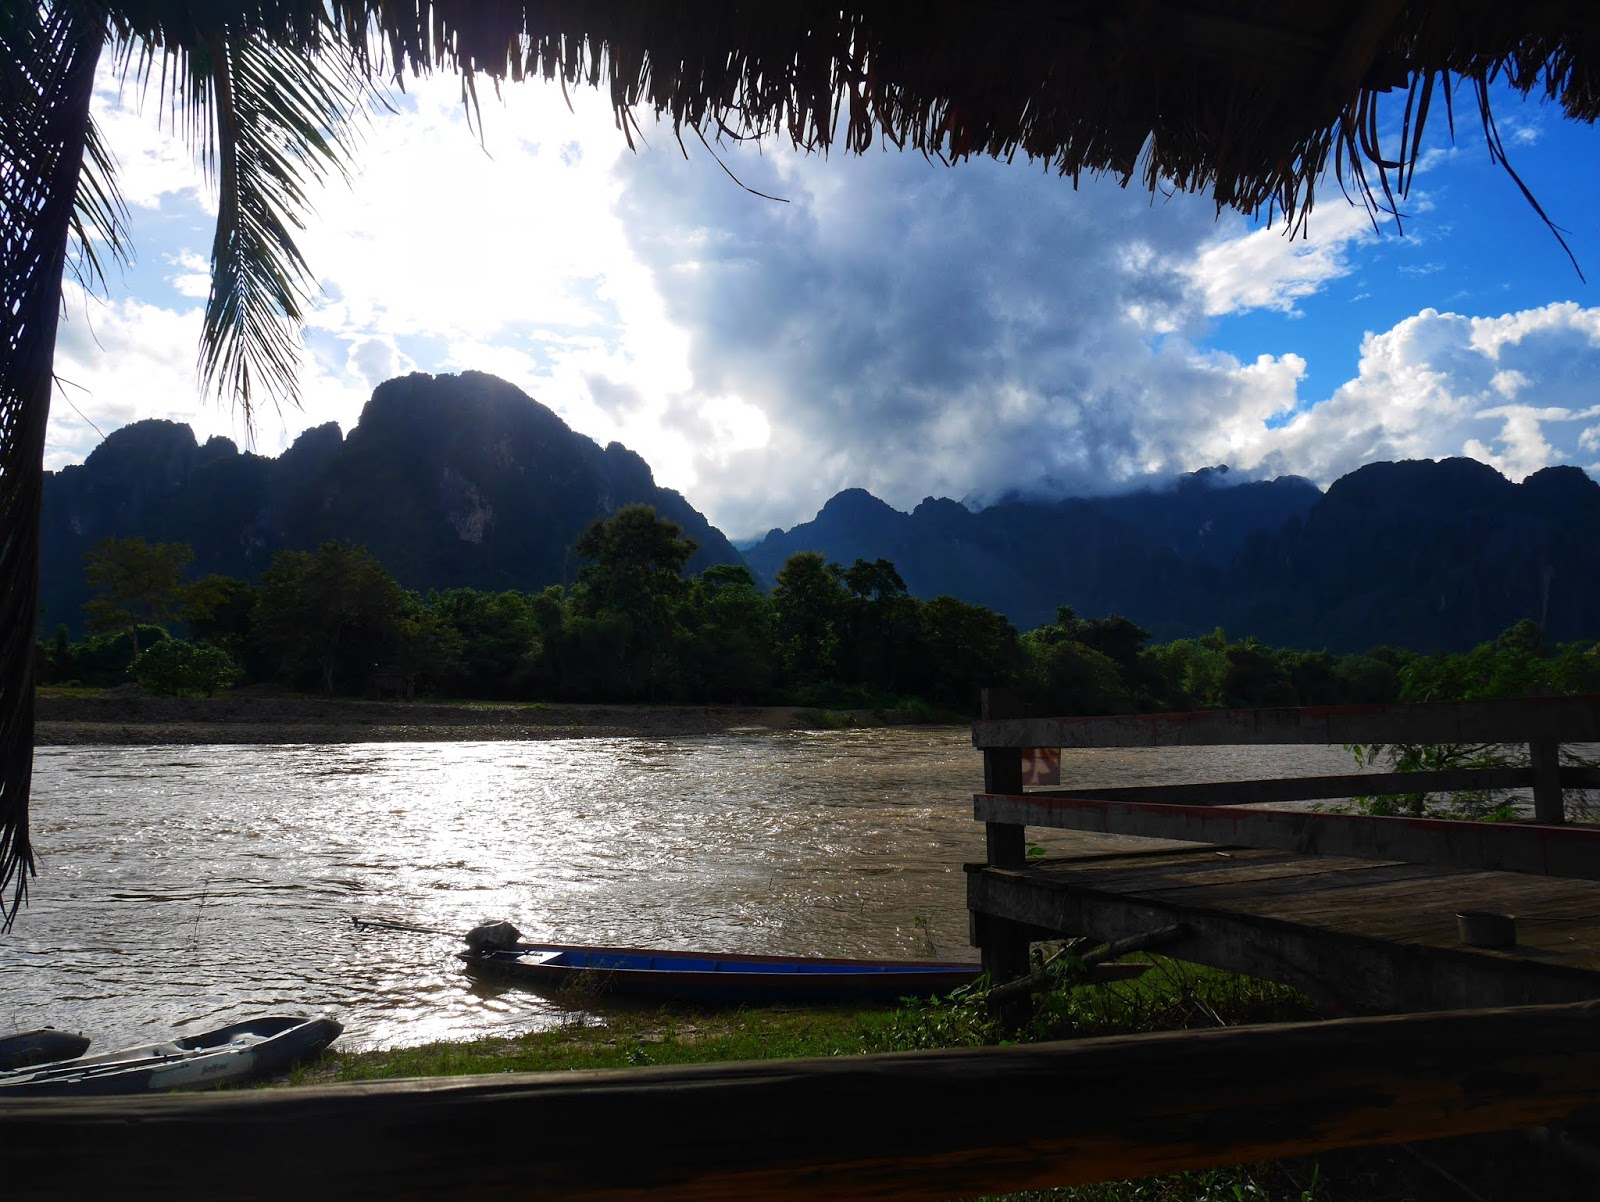 along the banks of the nam song river in vang vieng, laos